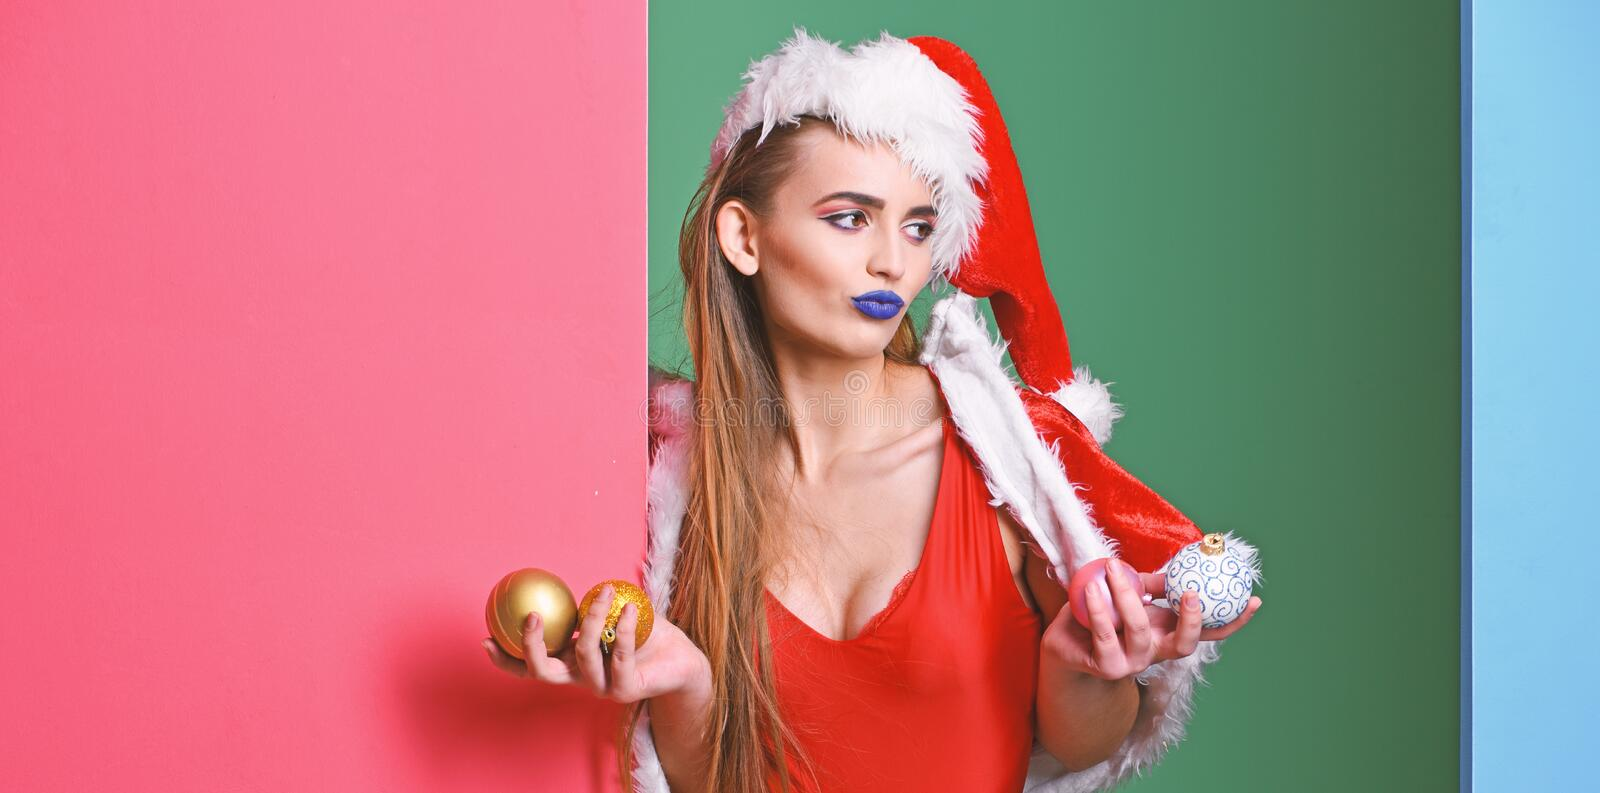 Santa girl christmas party masquerade. Celebrate pool party. Santa girl sexy with make up. Girl red swimsuit and santa. Hat hold christmas ball decoration royalty free stock photo